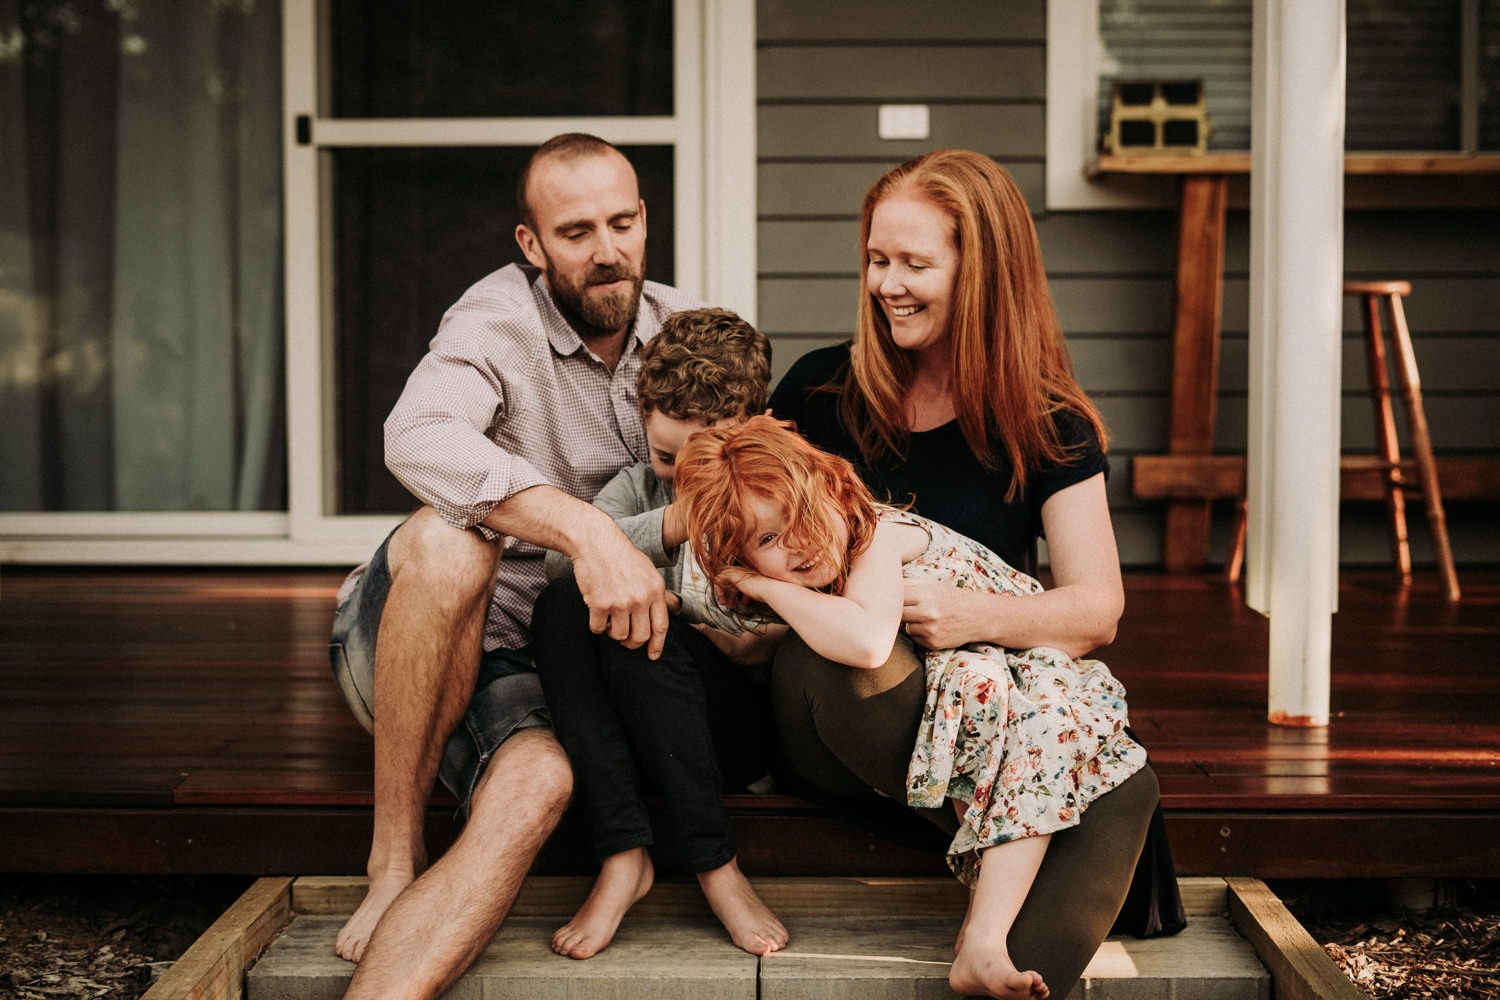 Byron Bay Family Portrait on the veranda of their home